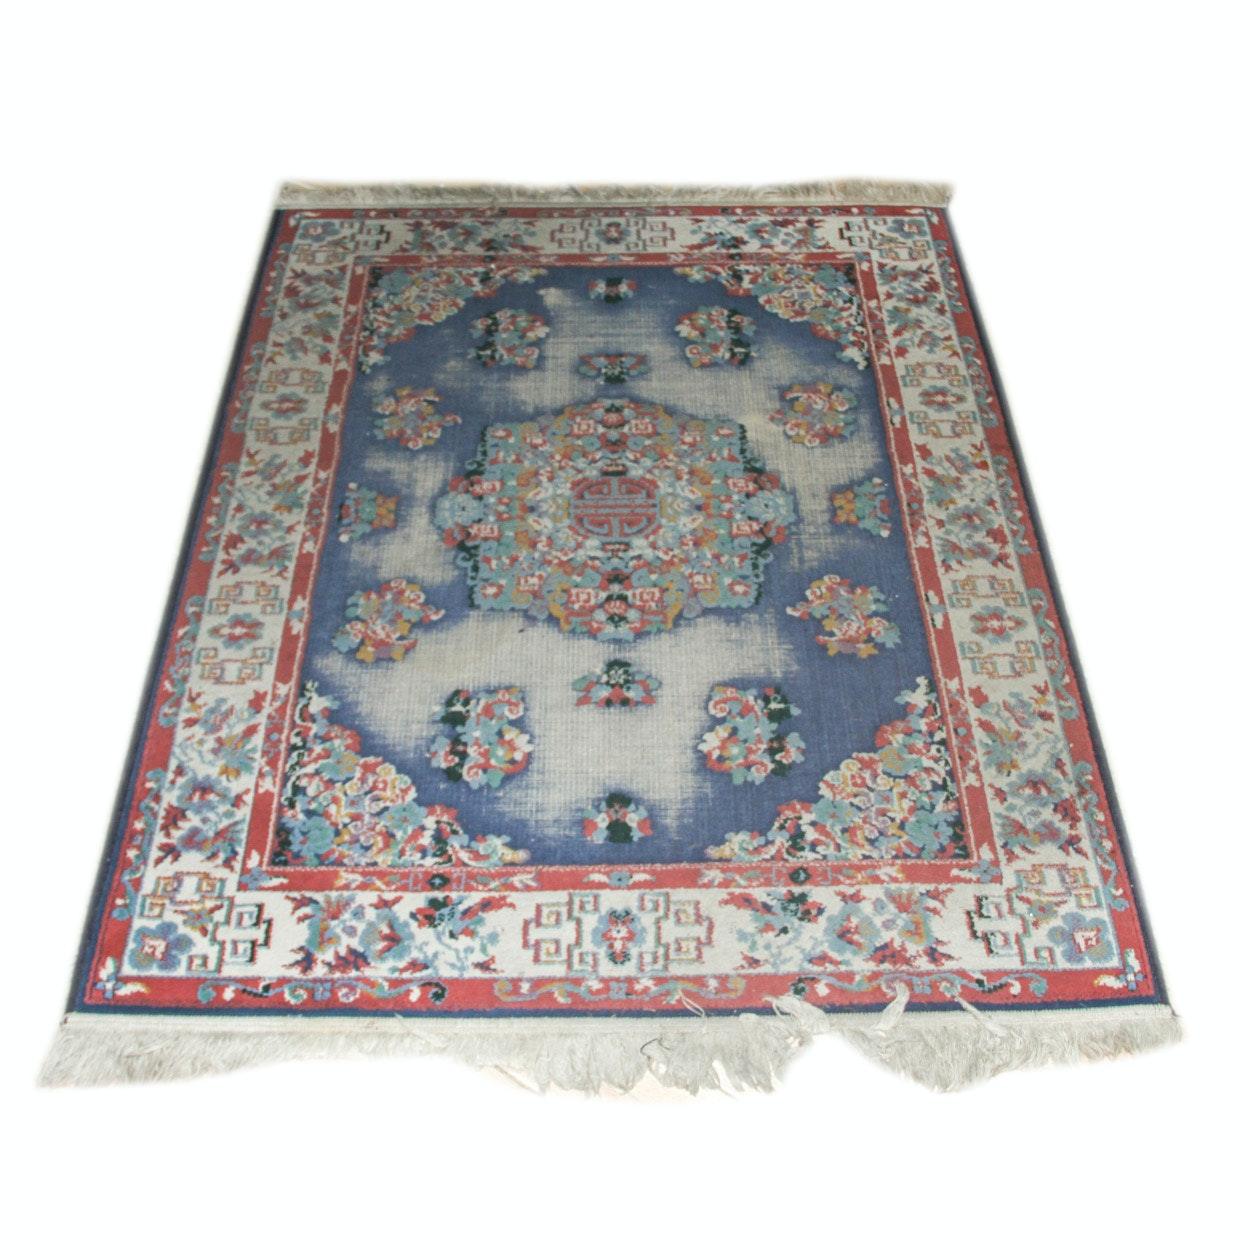 Vintage Machine Woven Chinese Area Rug